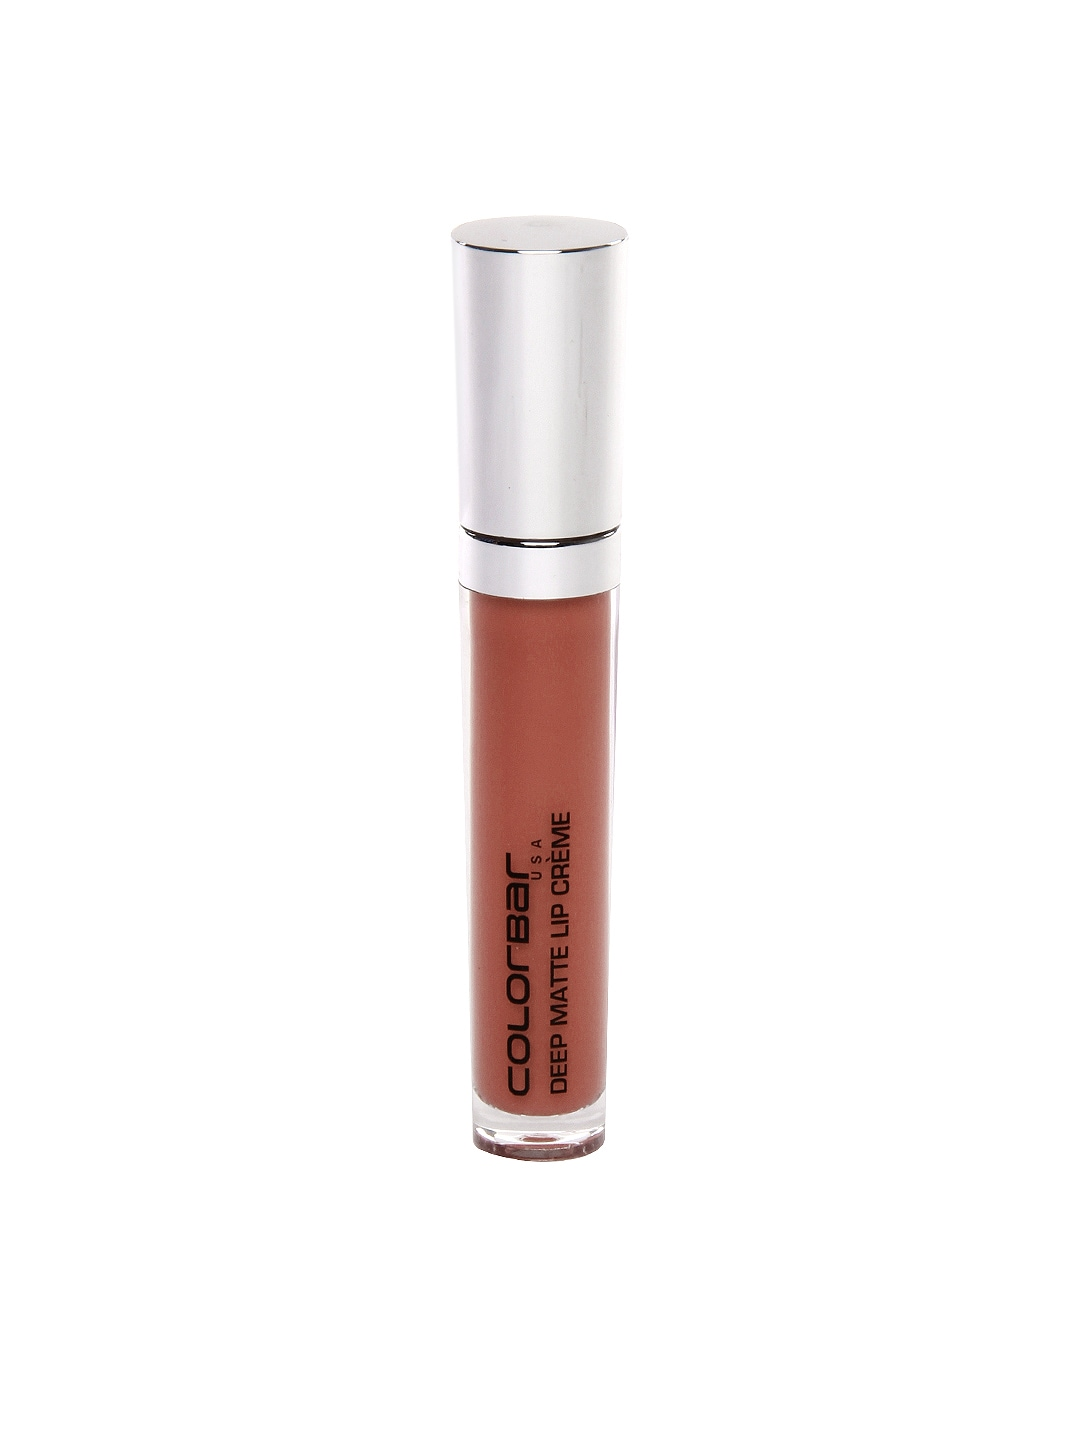 Colorbar USA Deep Coco Deep Matte Lip Creme 005